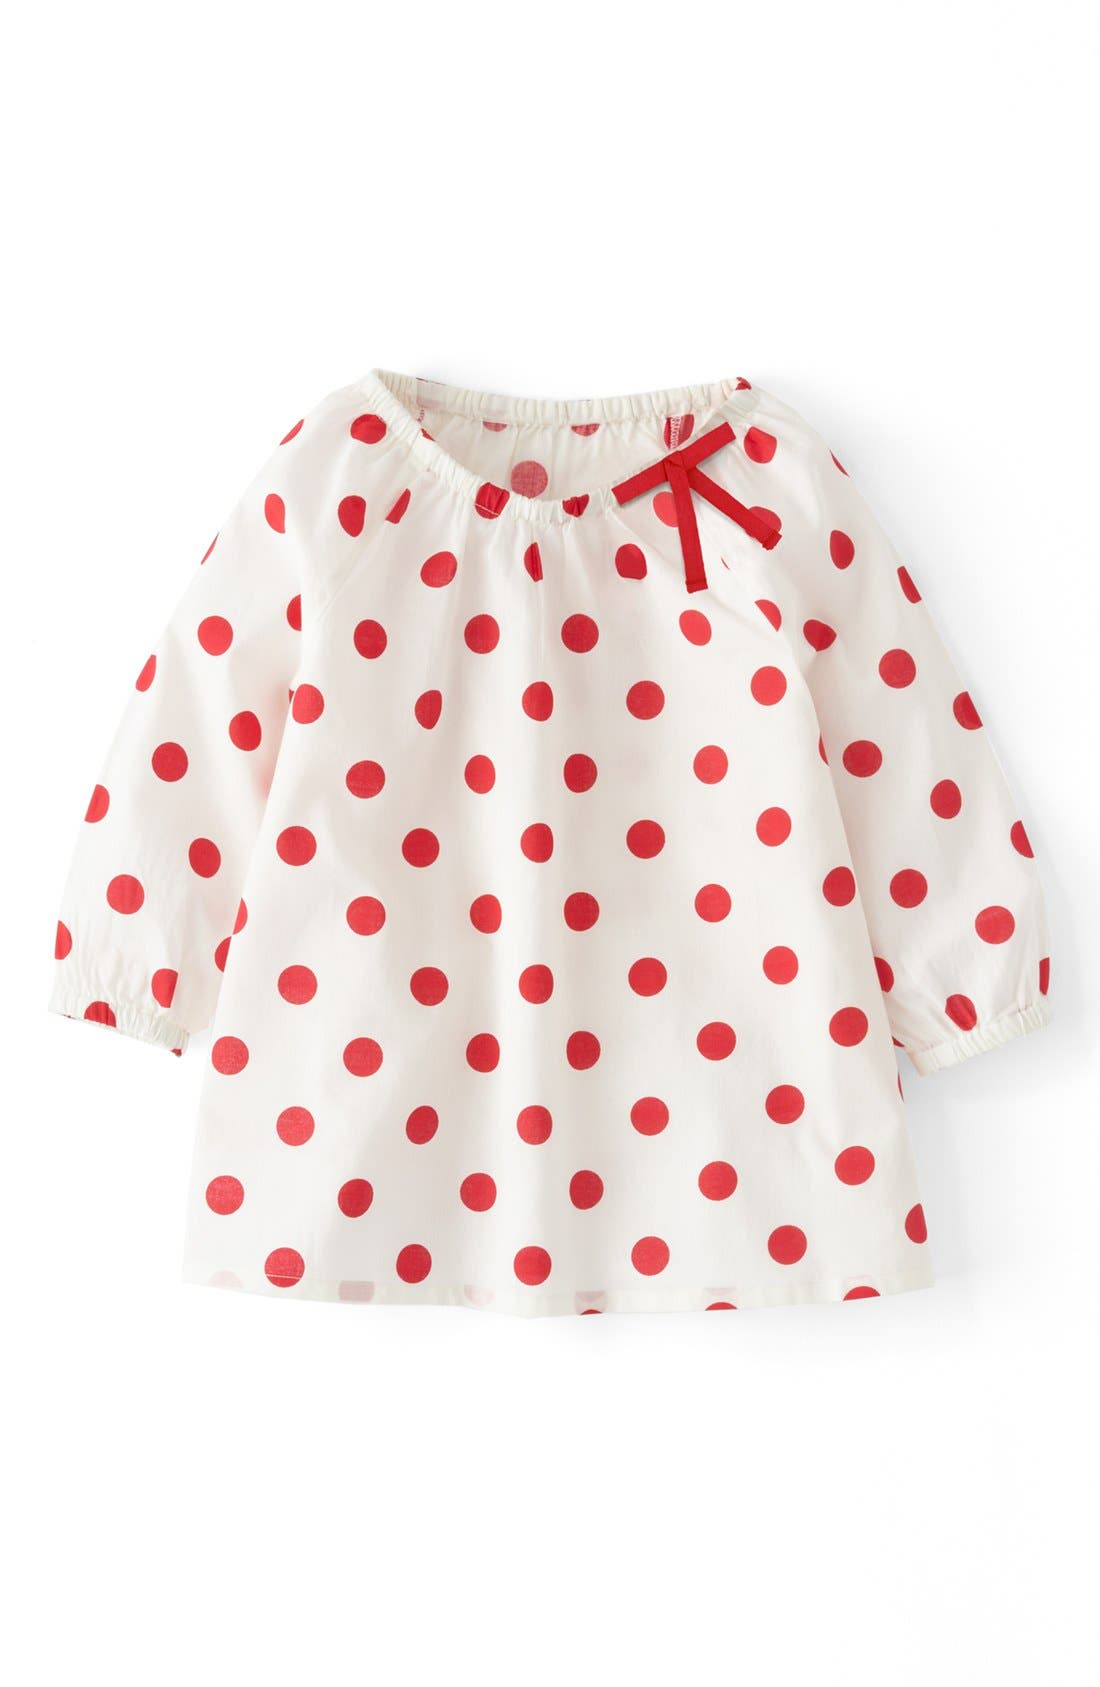 Alternate Image 1 Selected - Mini Boden 'Pretty' Woven Top (Toddler Girls)